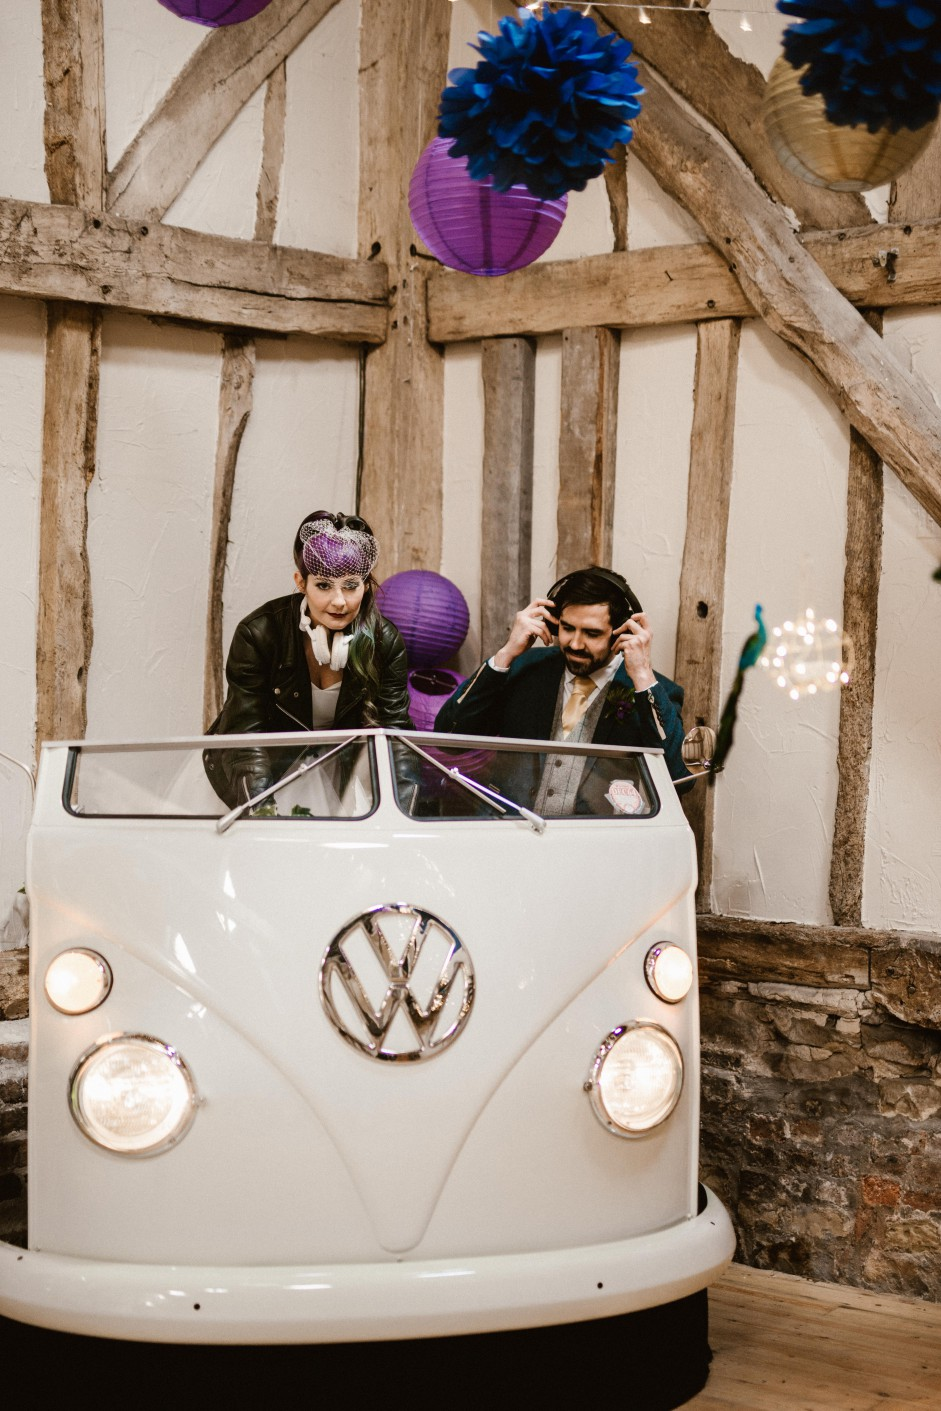 Peacock barns - alternative unconventional wedding photoshoot - rustic decadent - VW DJ booth - wedding DJ